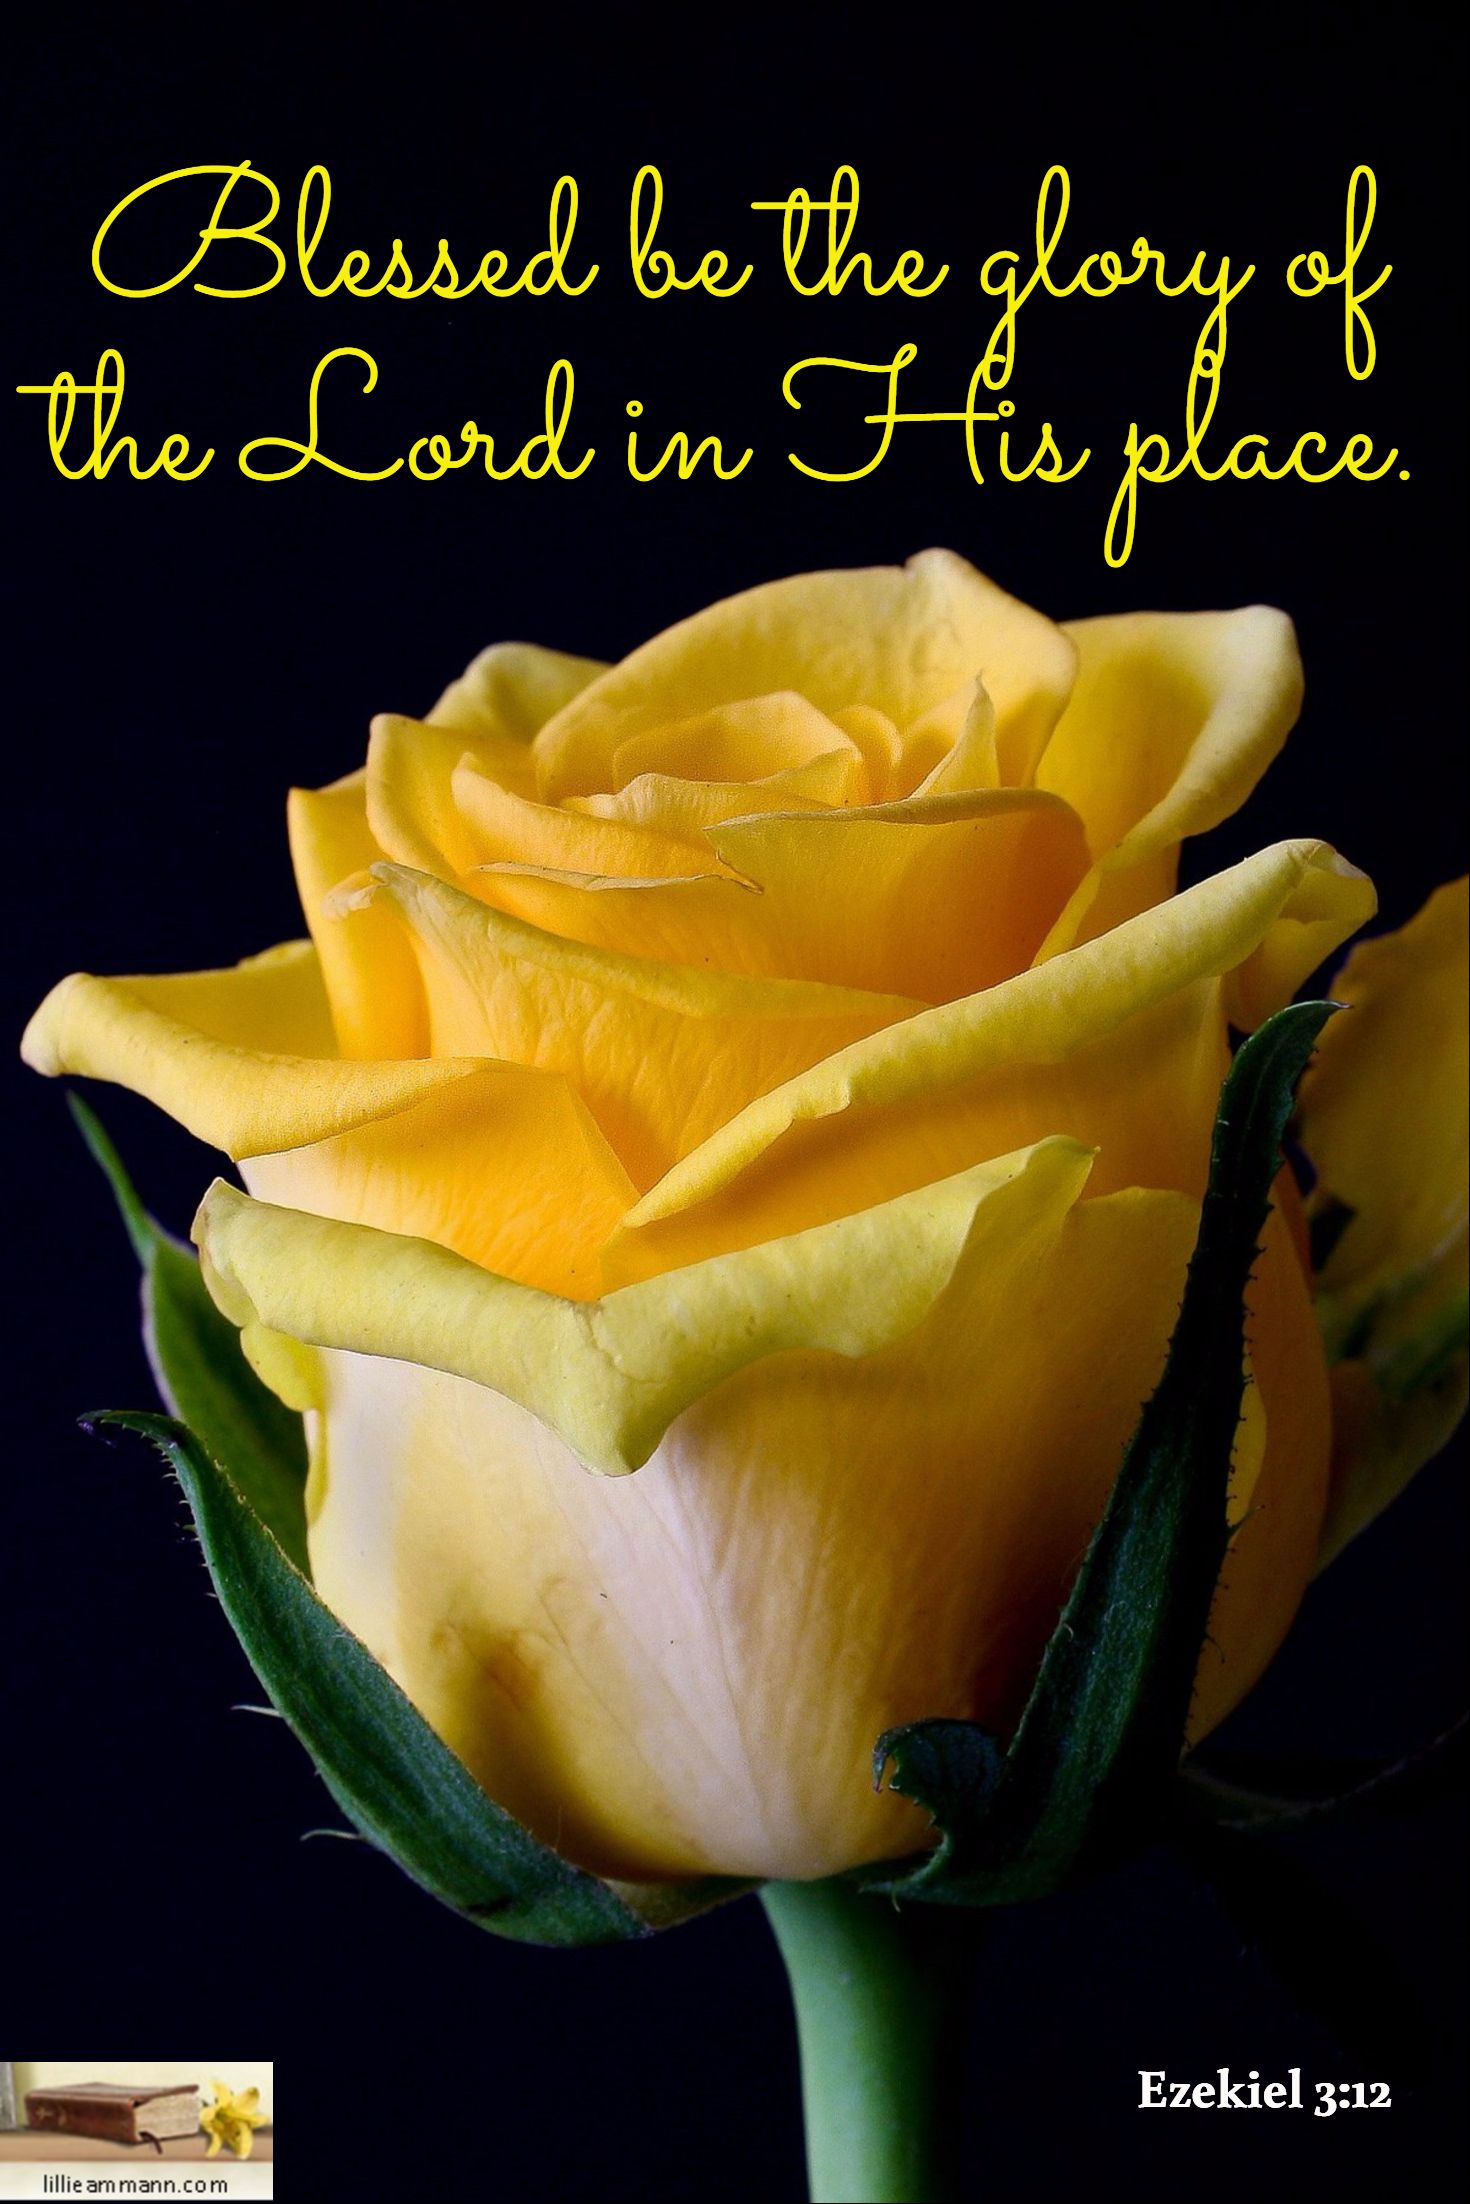 Ezekiel 3:12 / Blessed be the glory of the Lord in His place.